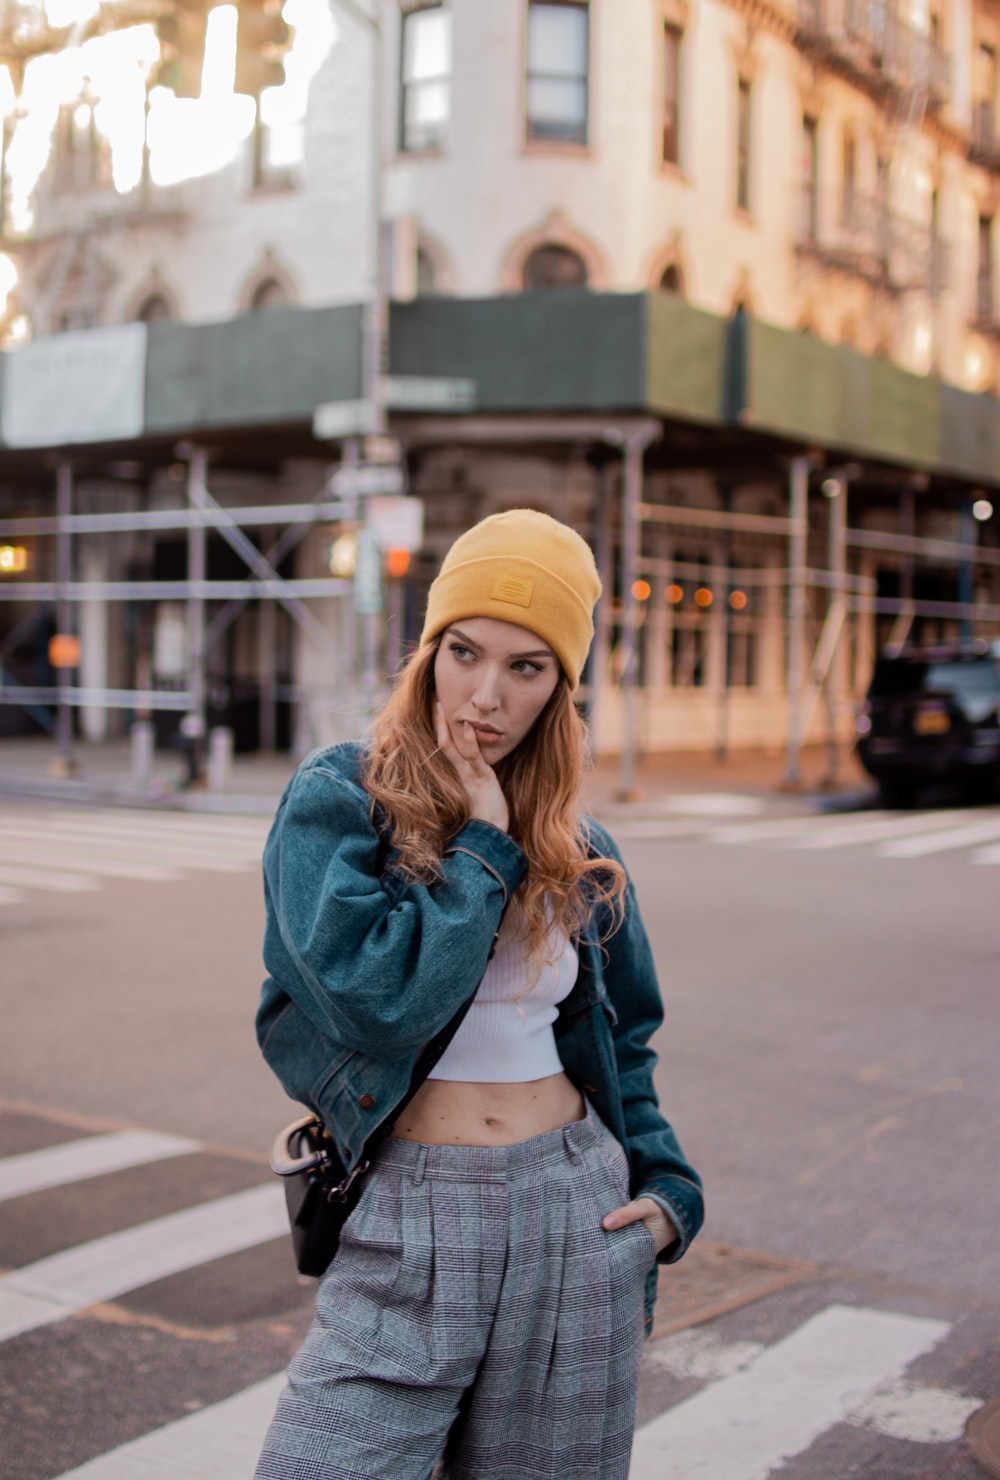 woman in blue denim jacket and yellow knit cap standing on sidewalk during daytime